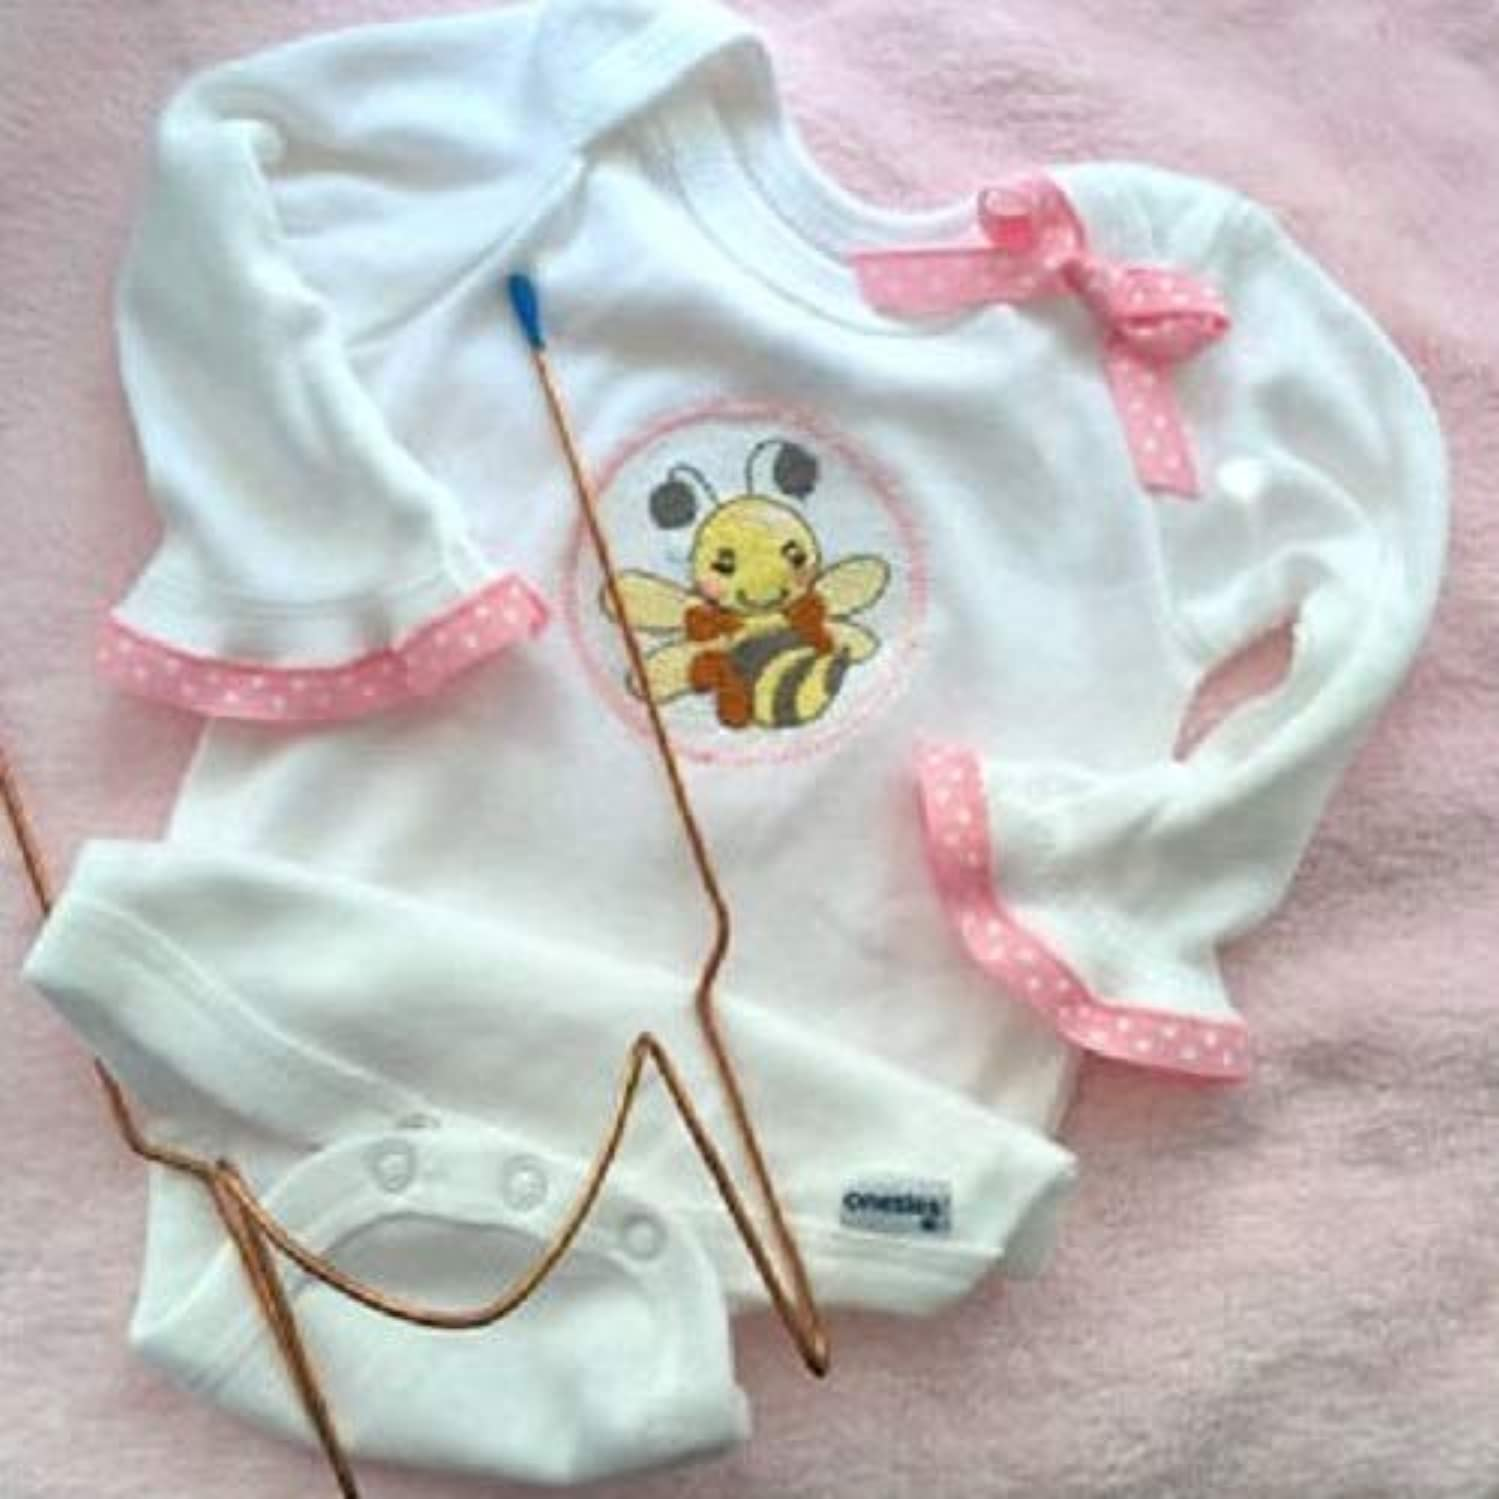 Easy Tool for Baby - Hoop Baby Bodysuits Fast and Easy for Embroidery Machine